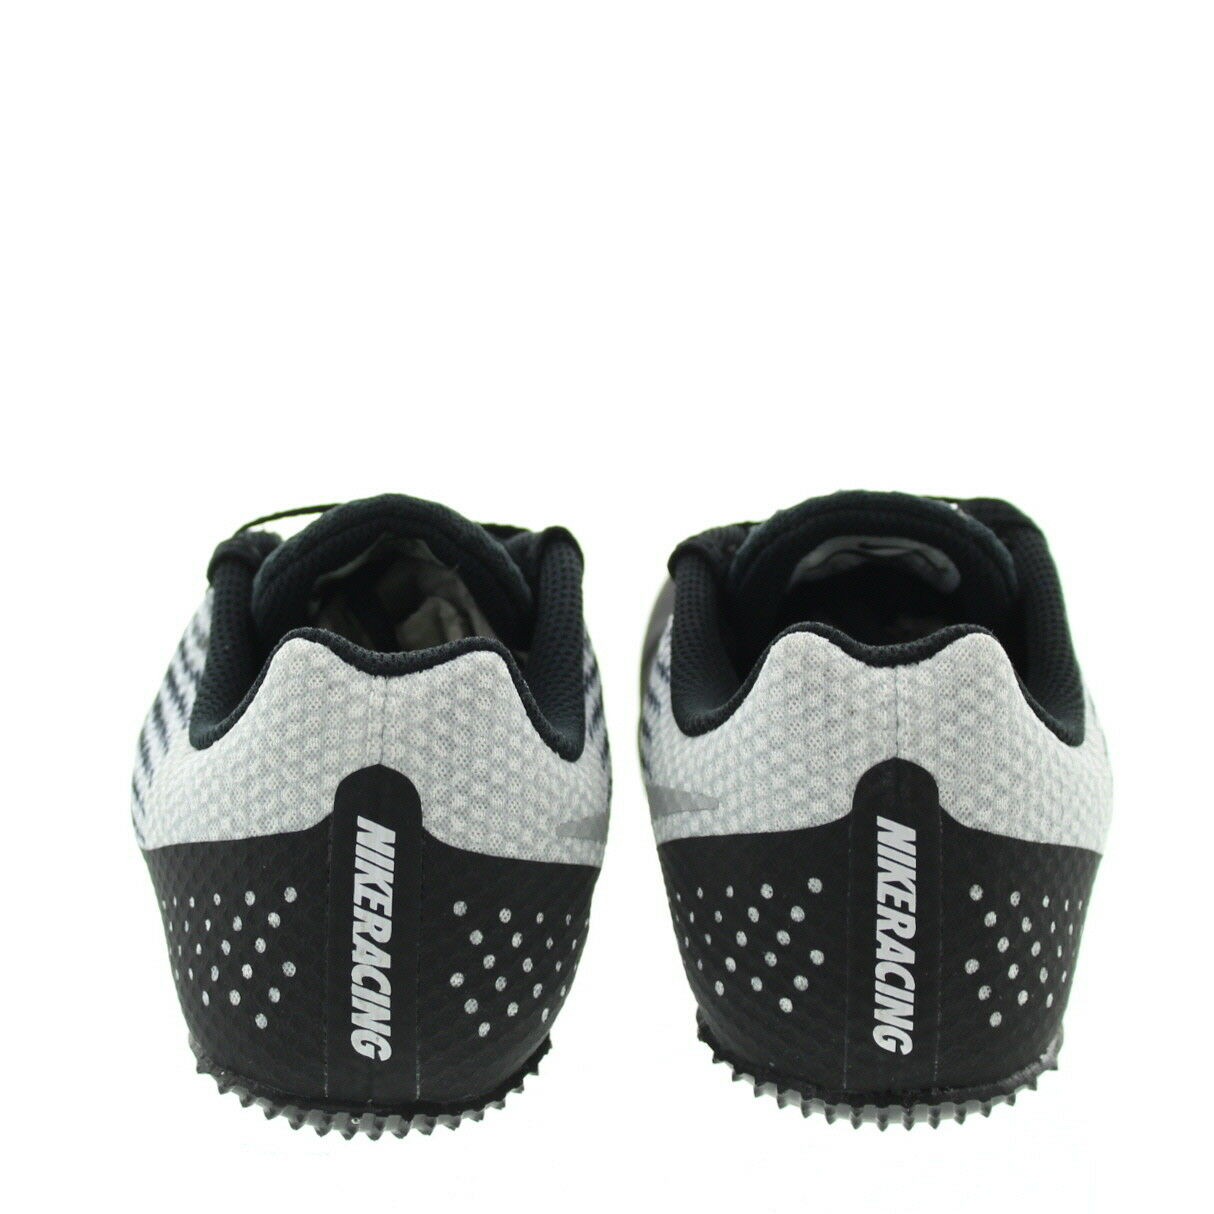 new arrival fe65e fdeee get nike 806554 mens and zoom rival s 8 track and mens field running spiked  cleats